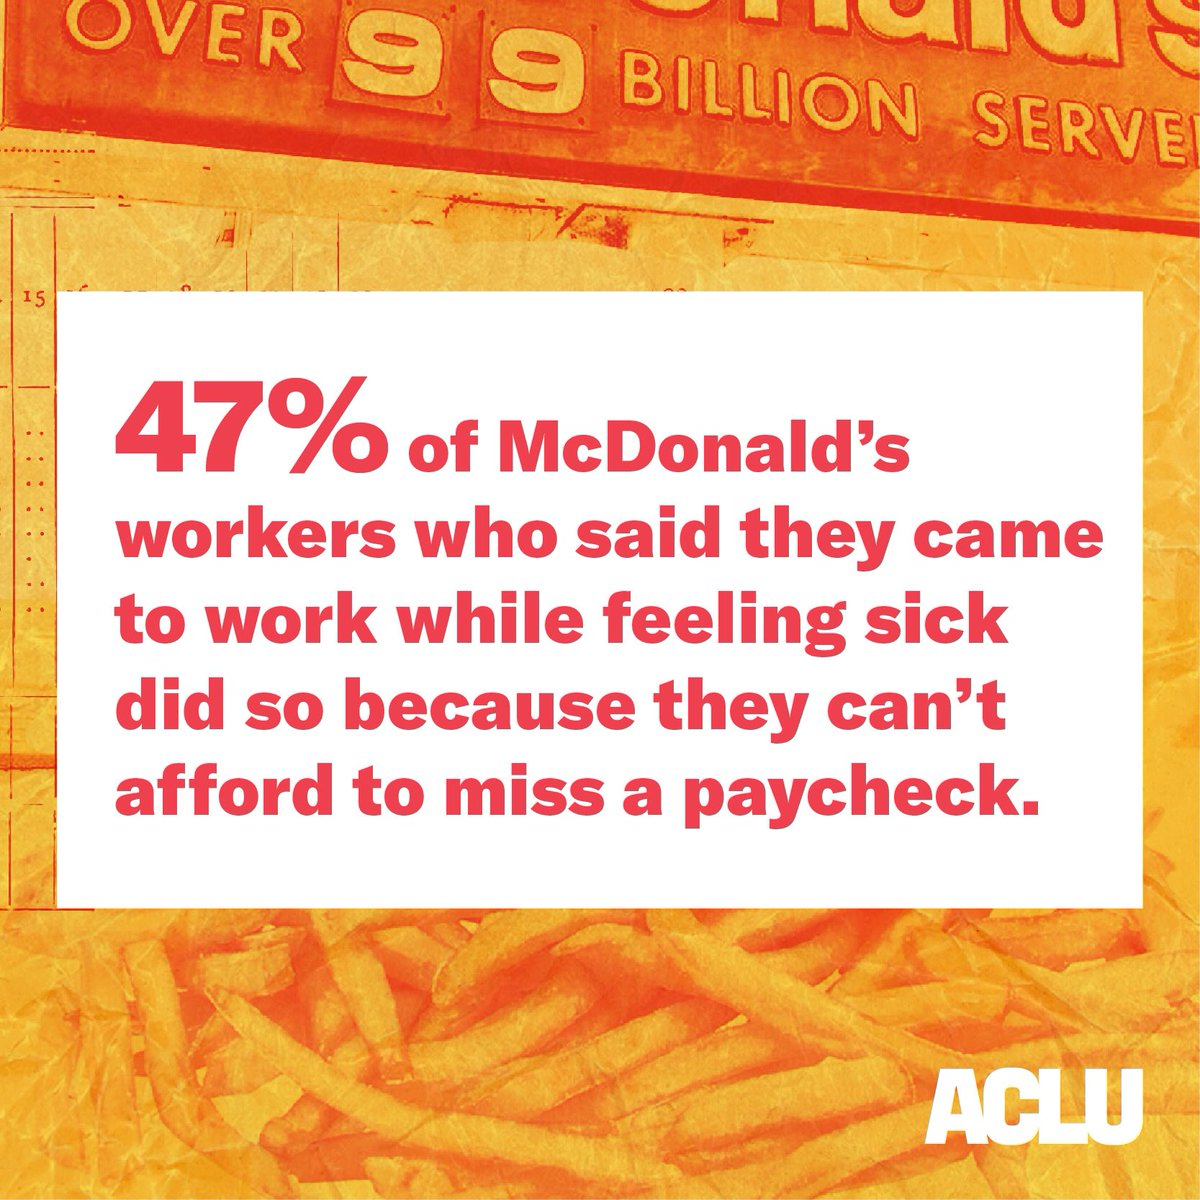 No one should have to choose between their work and their paycheck. Period.